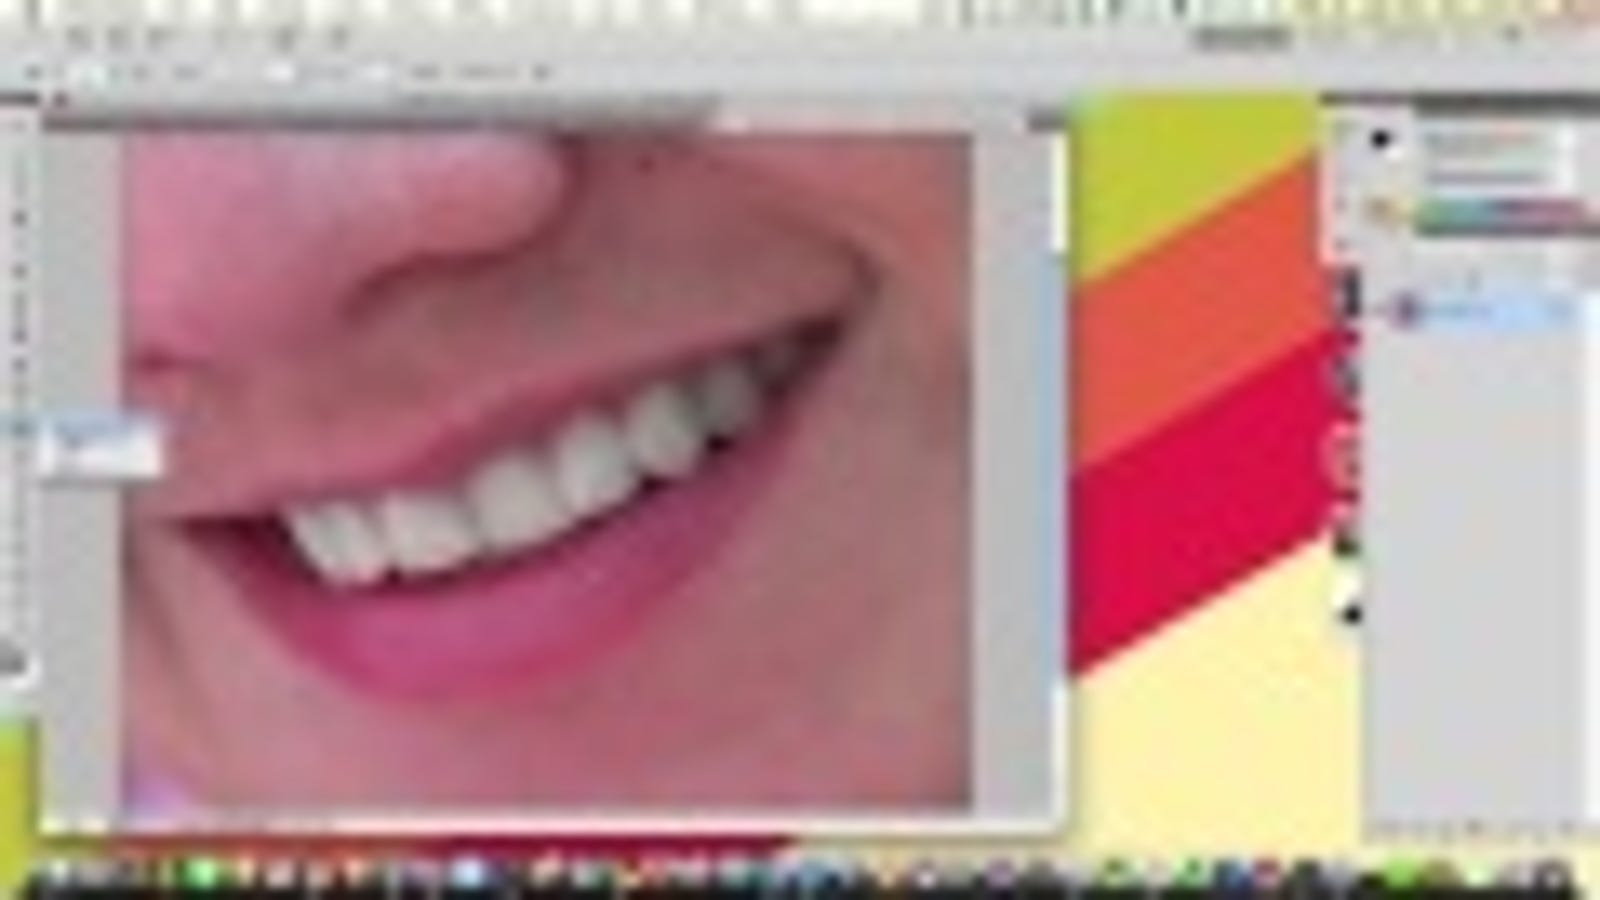 How To Whiten Teeth In Your Photos